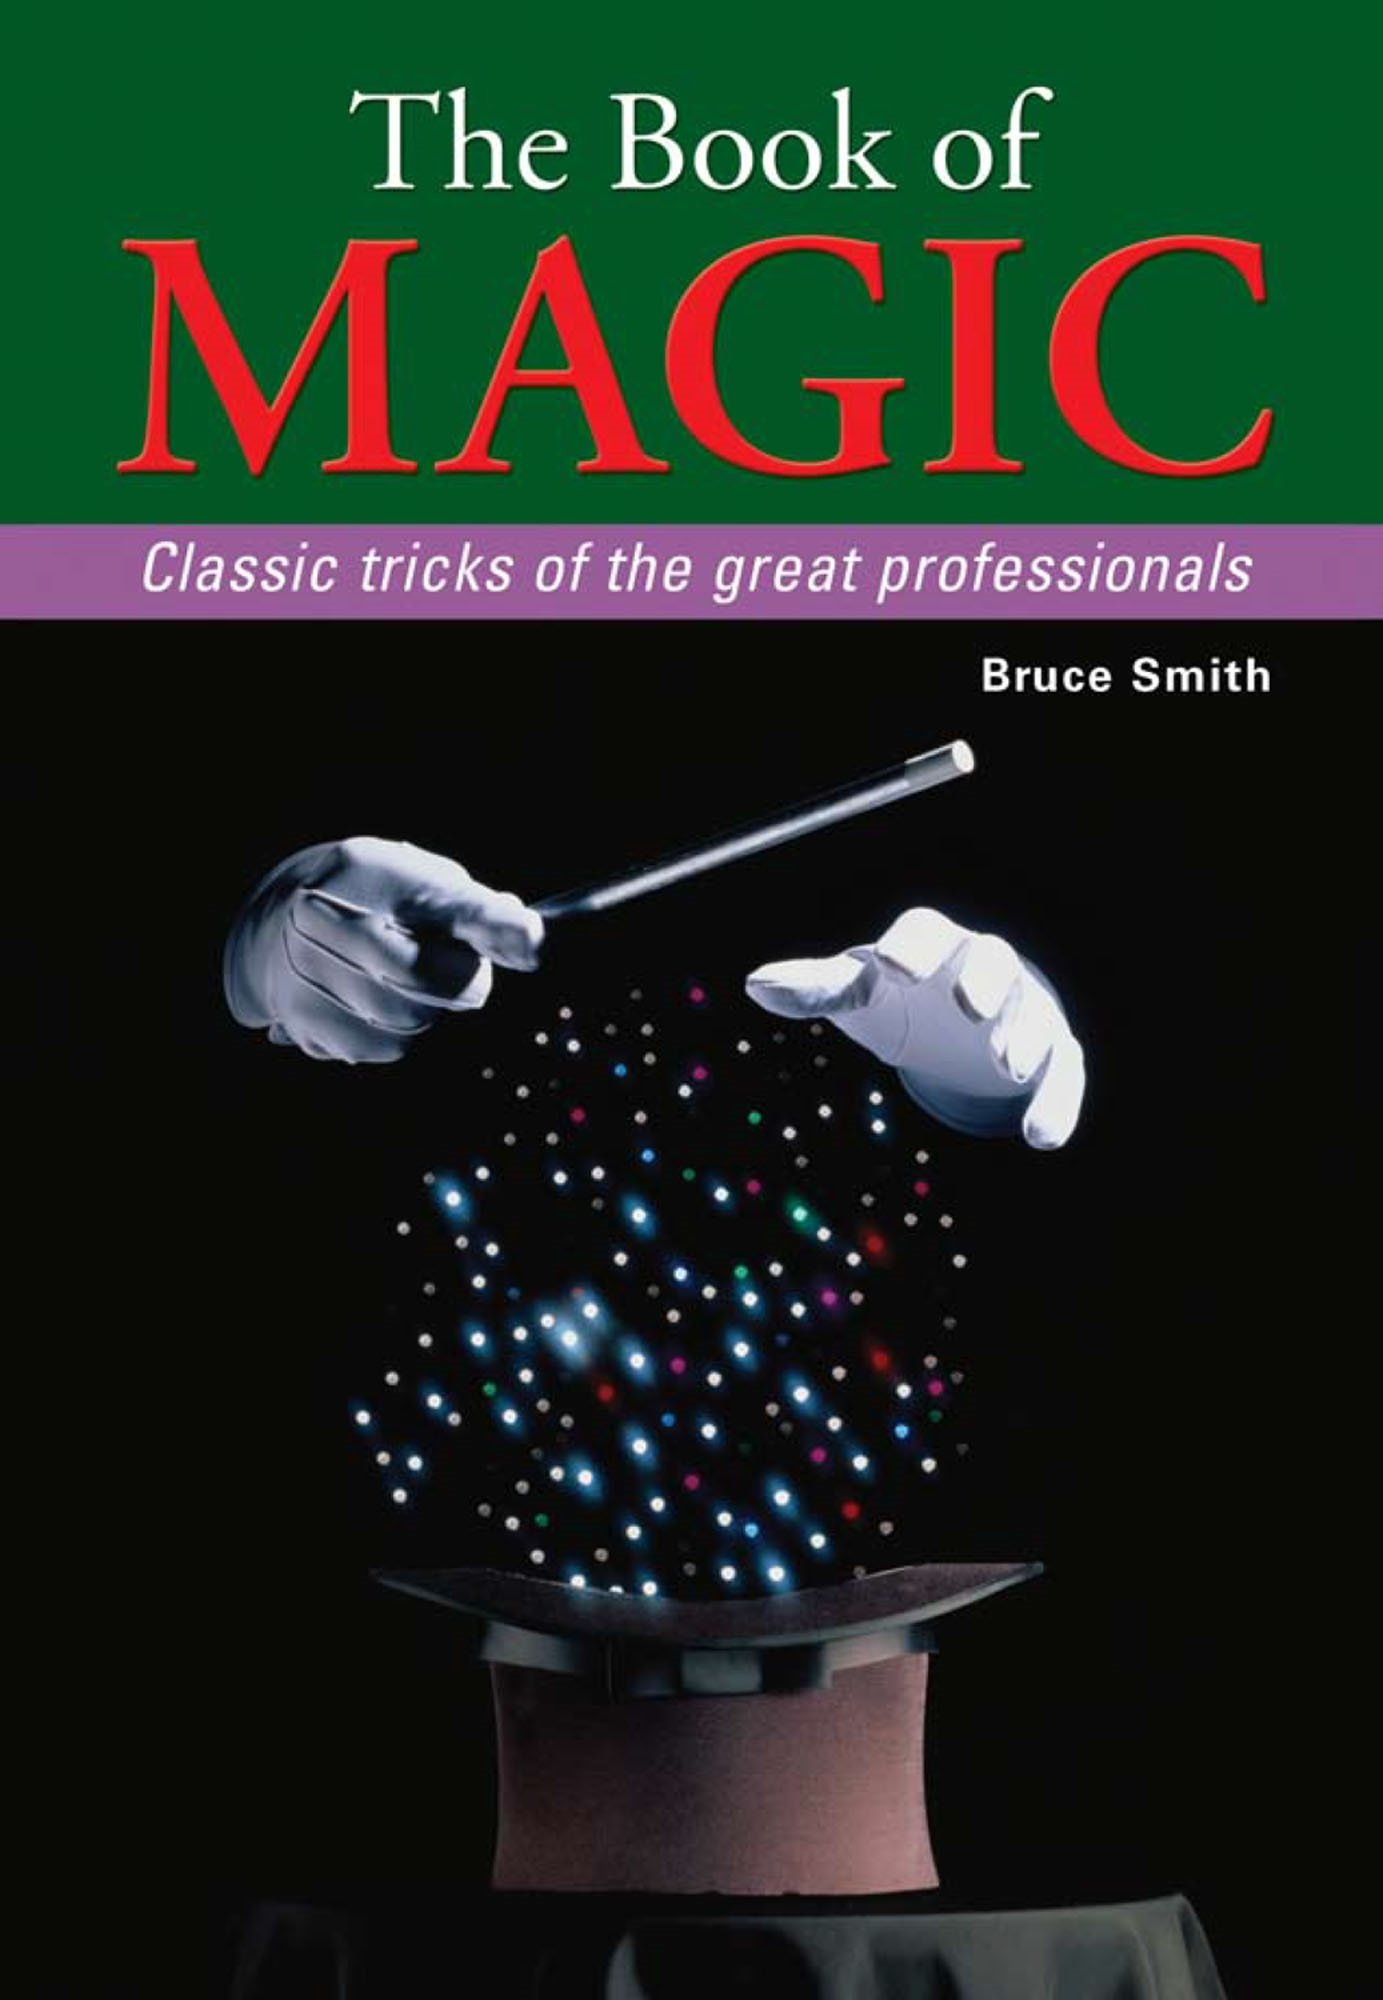 The Book of Magic: Classic Tricks of the Great Professionals